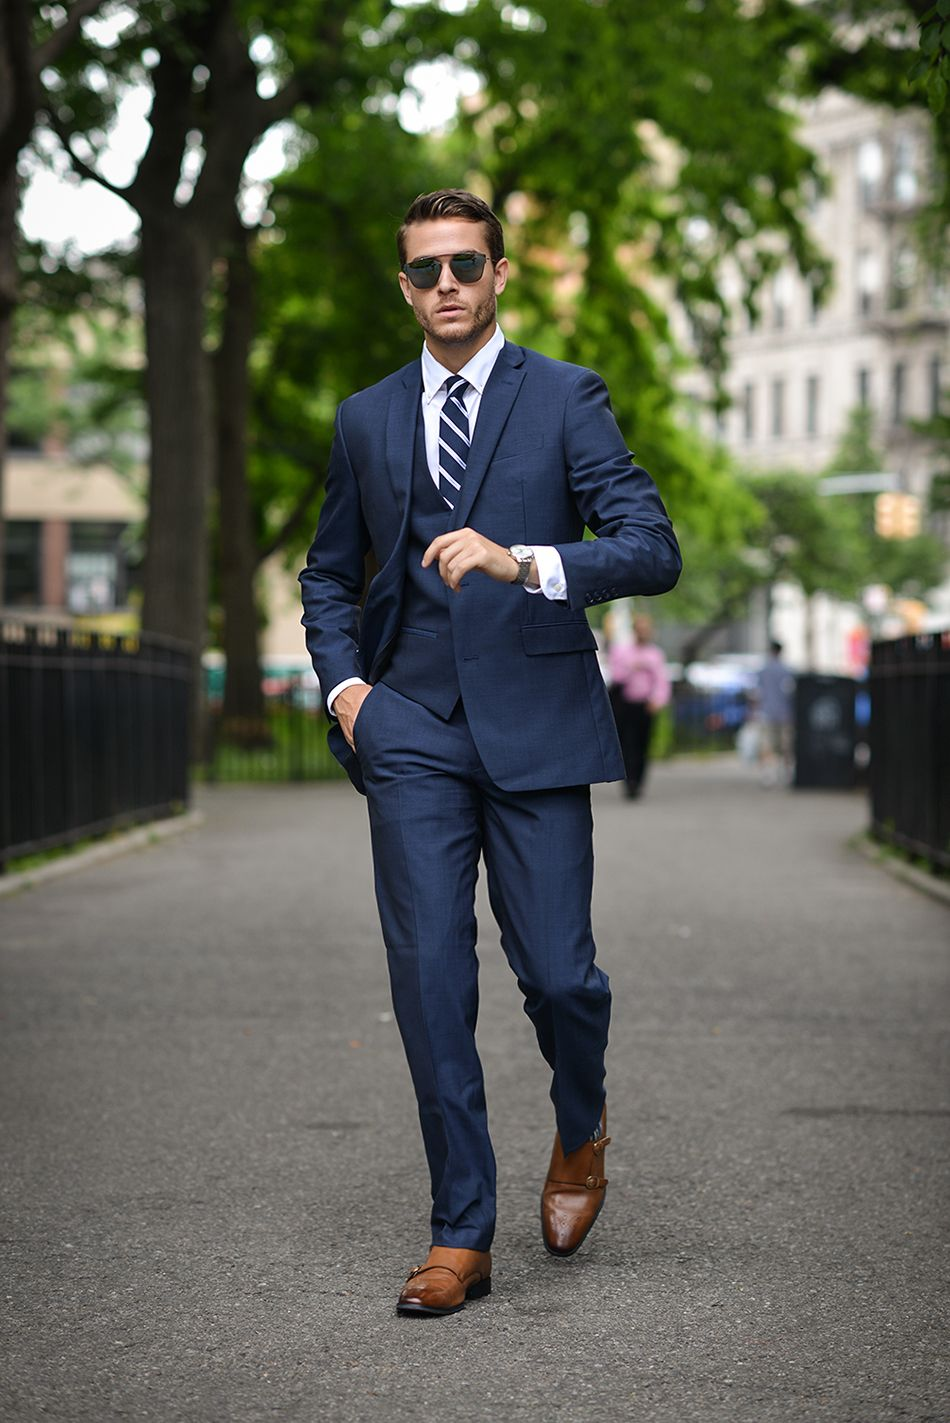 Men's Style & Inspiration Blog : Men's Style Guide and Men's ...